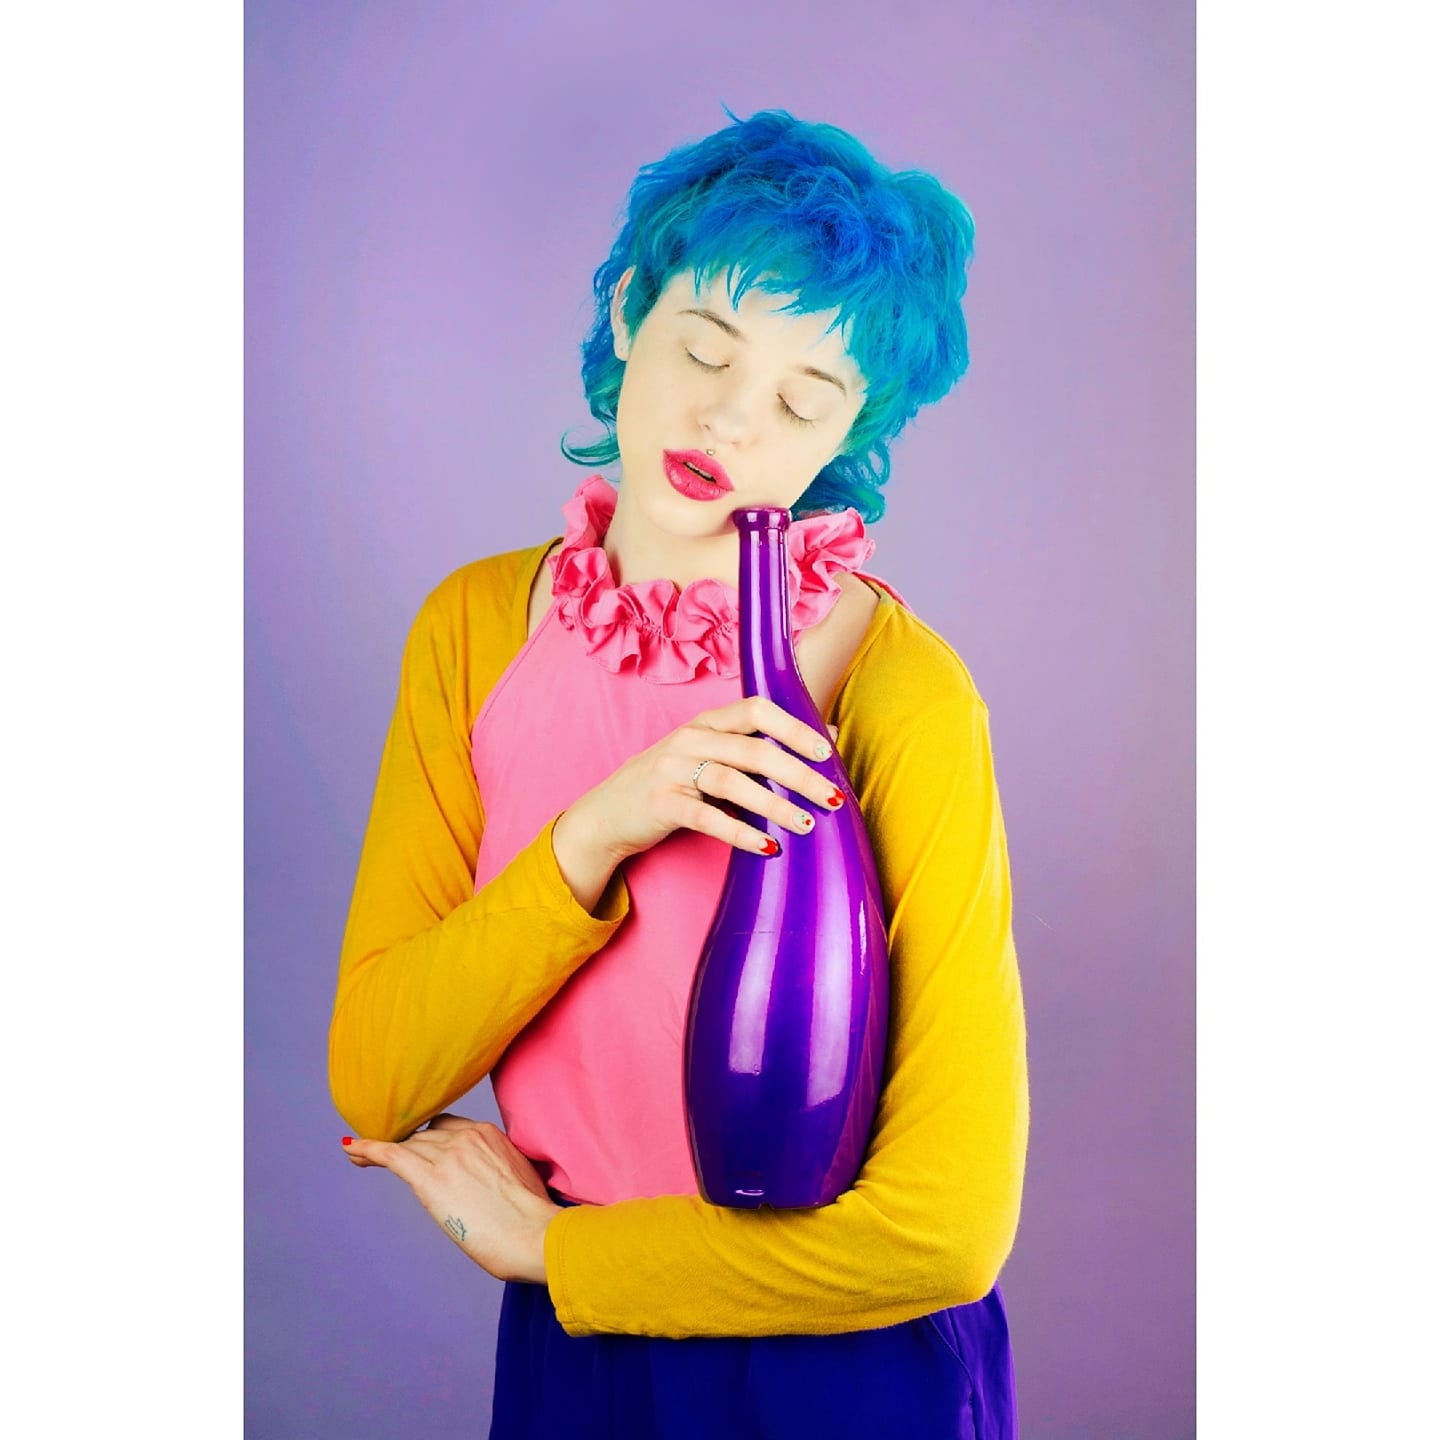 A colorful photo of a woman with blue hair holding a purple vase